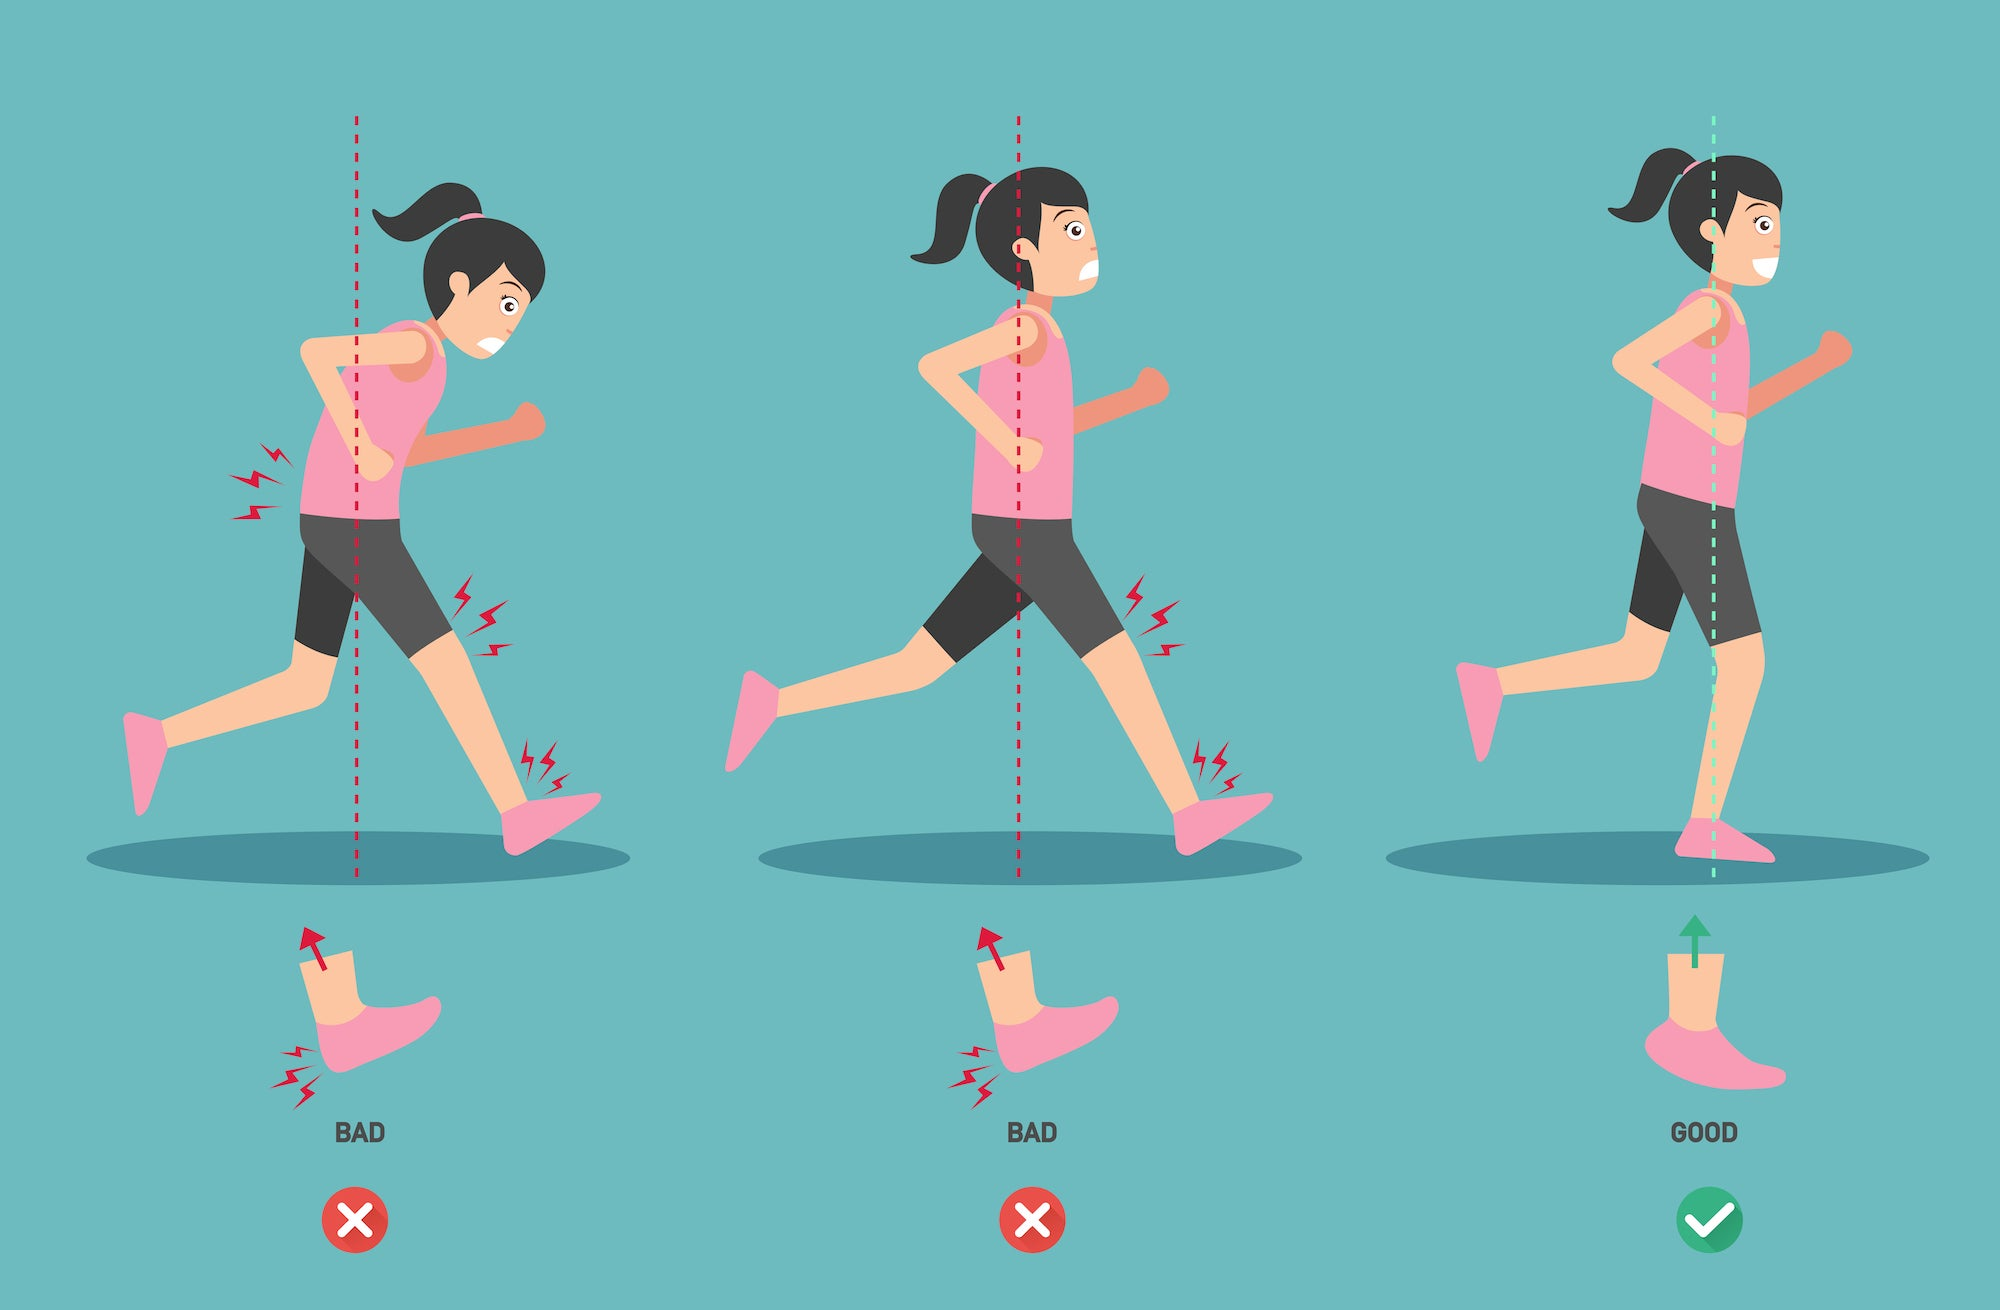 How Improving Your Posture Can Make You Run Better